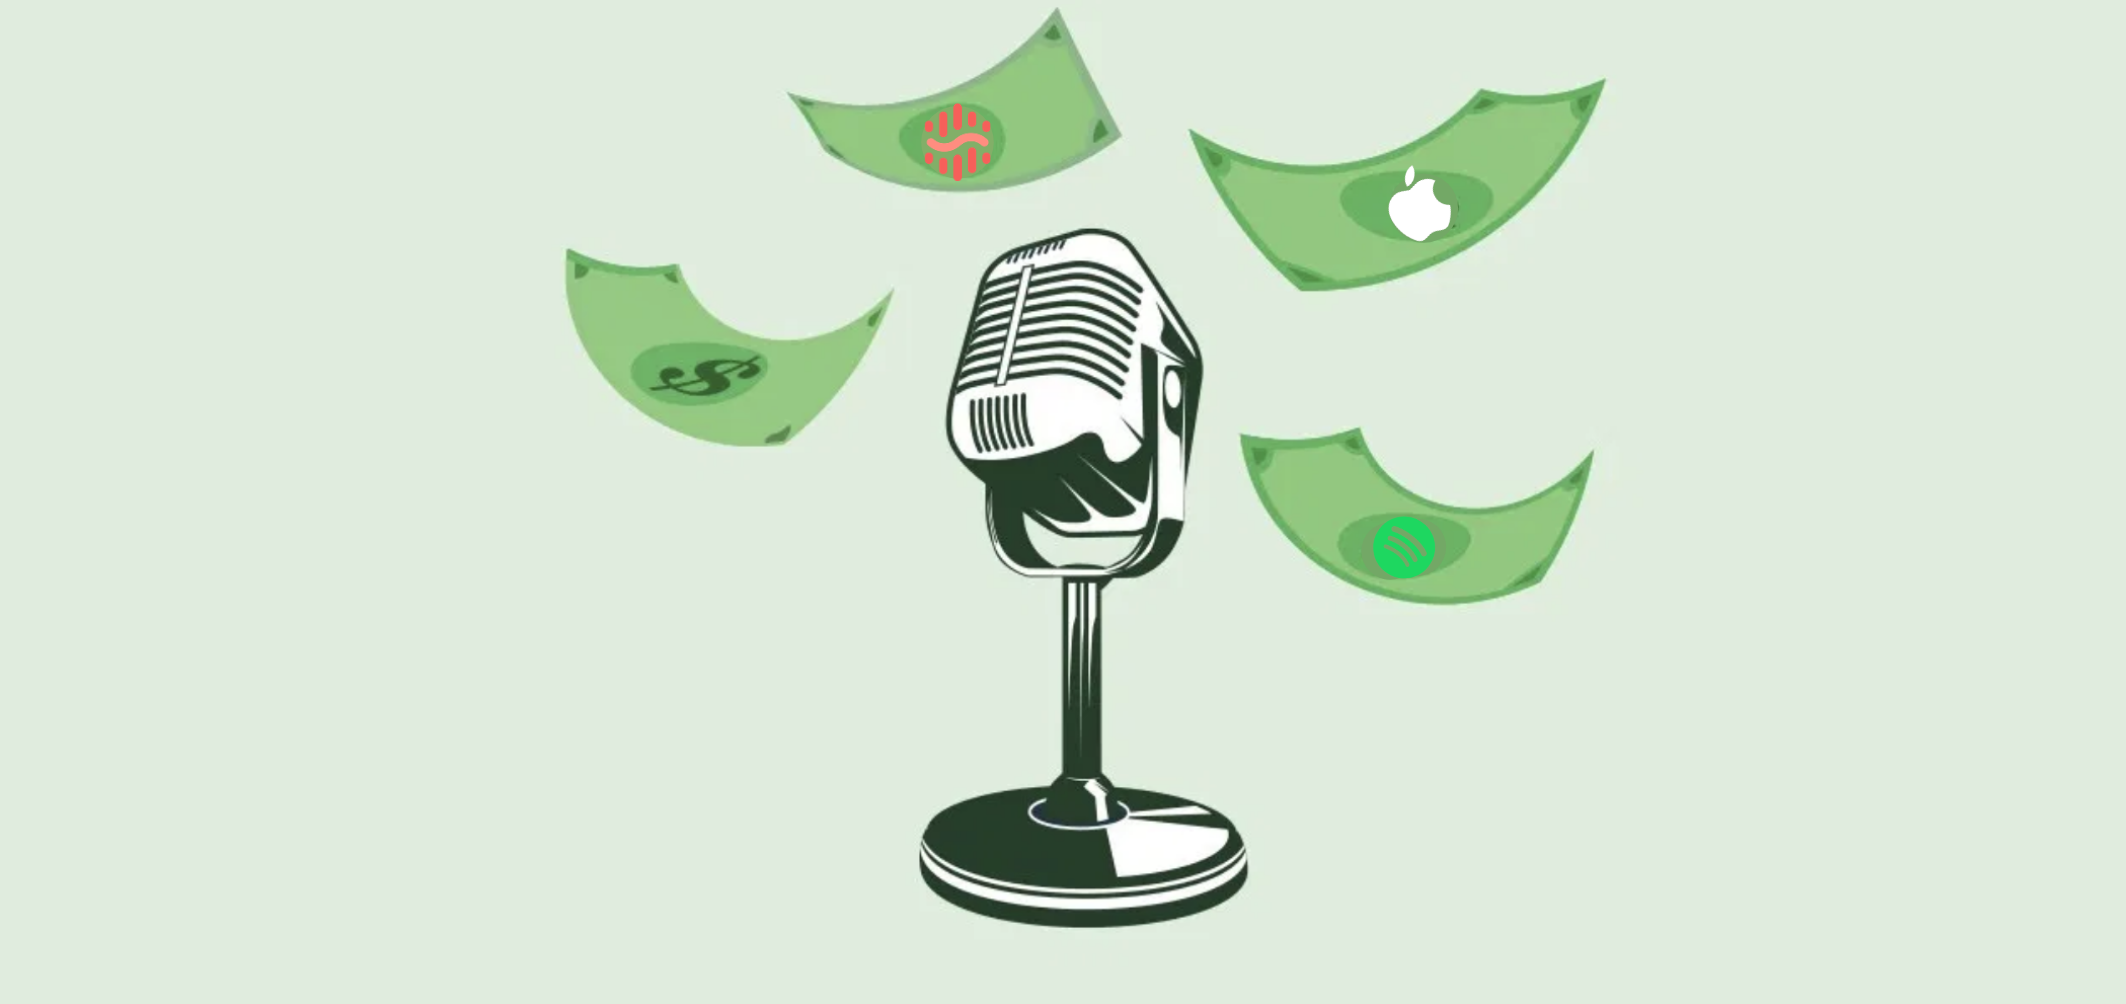 Paying for podcast content is about to go mainstream. But who will own your subscribers?